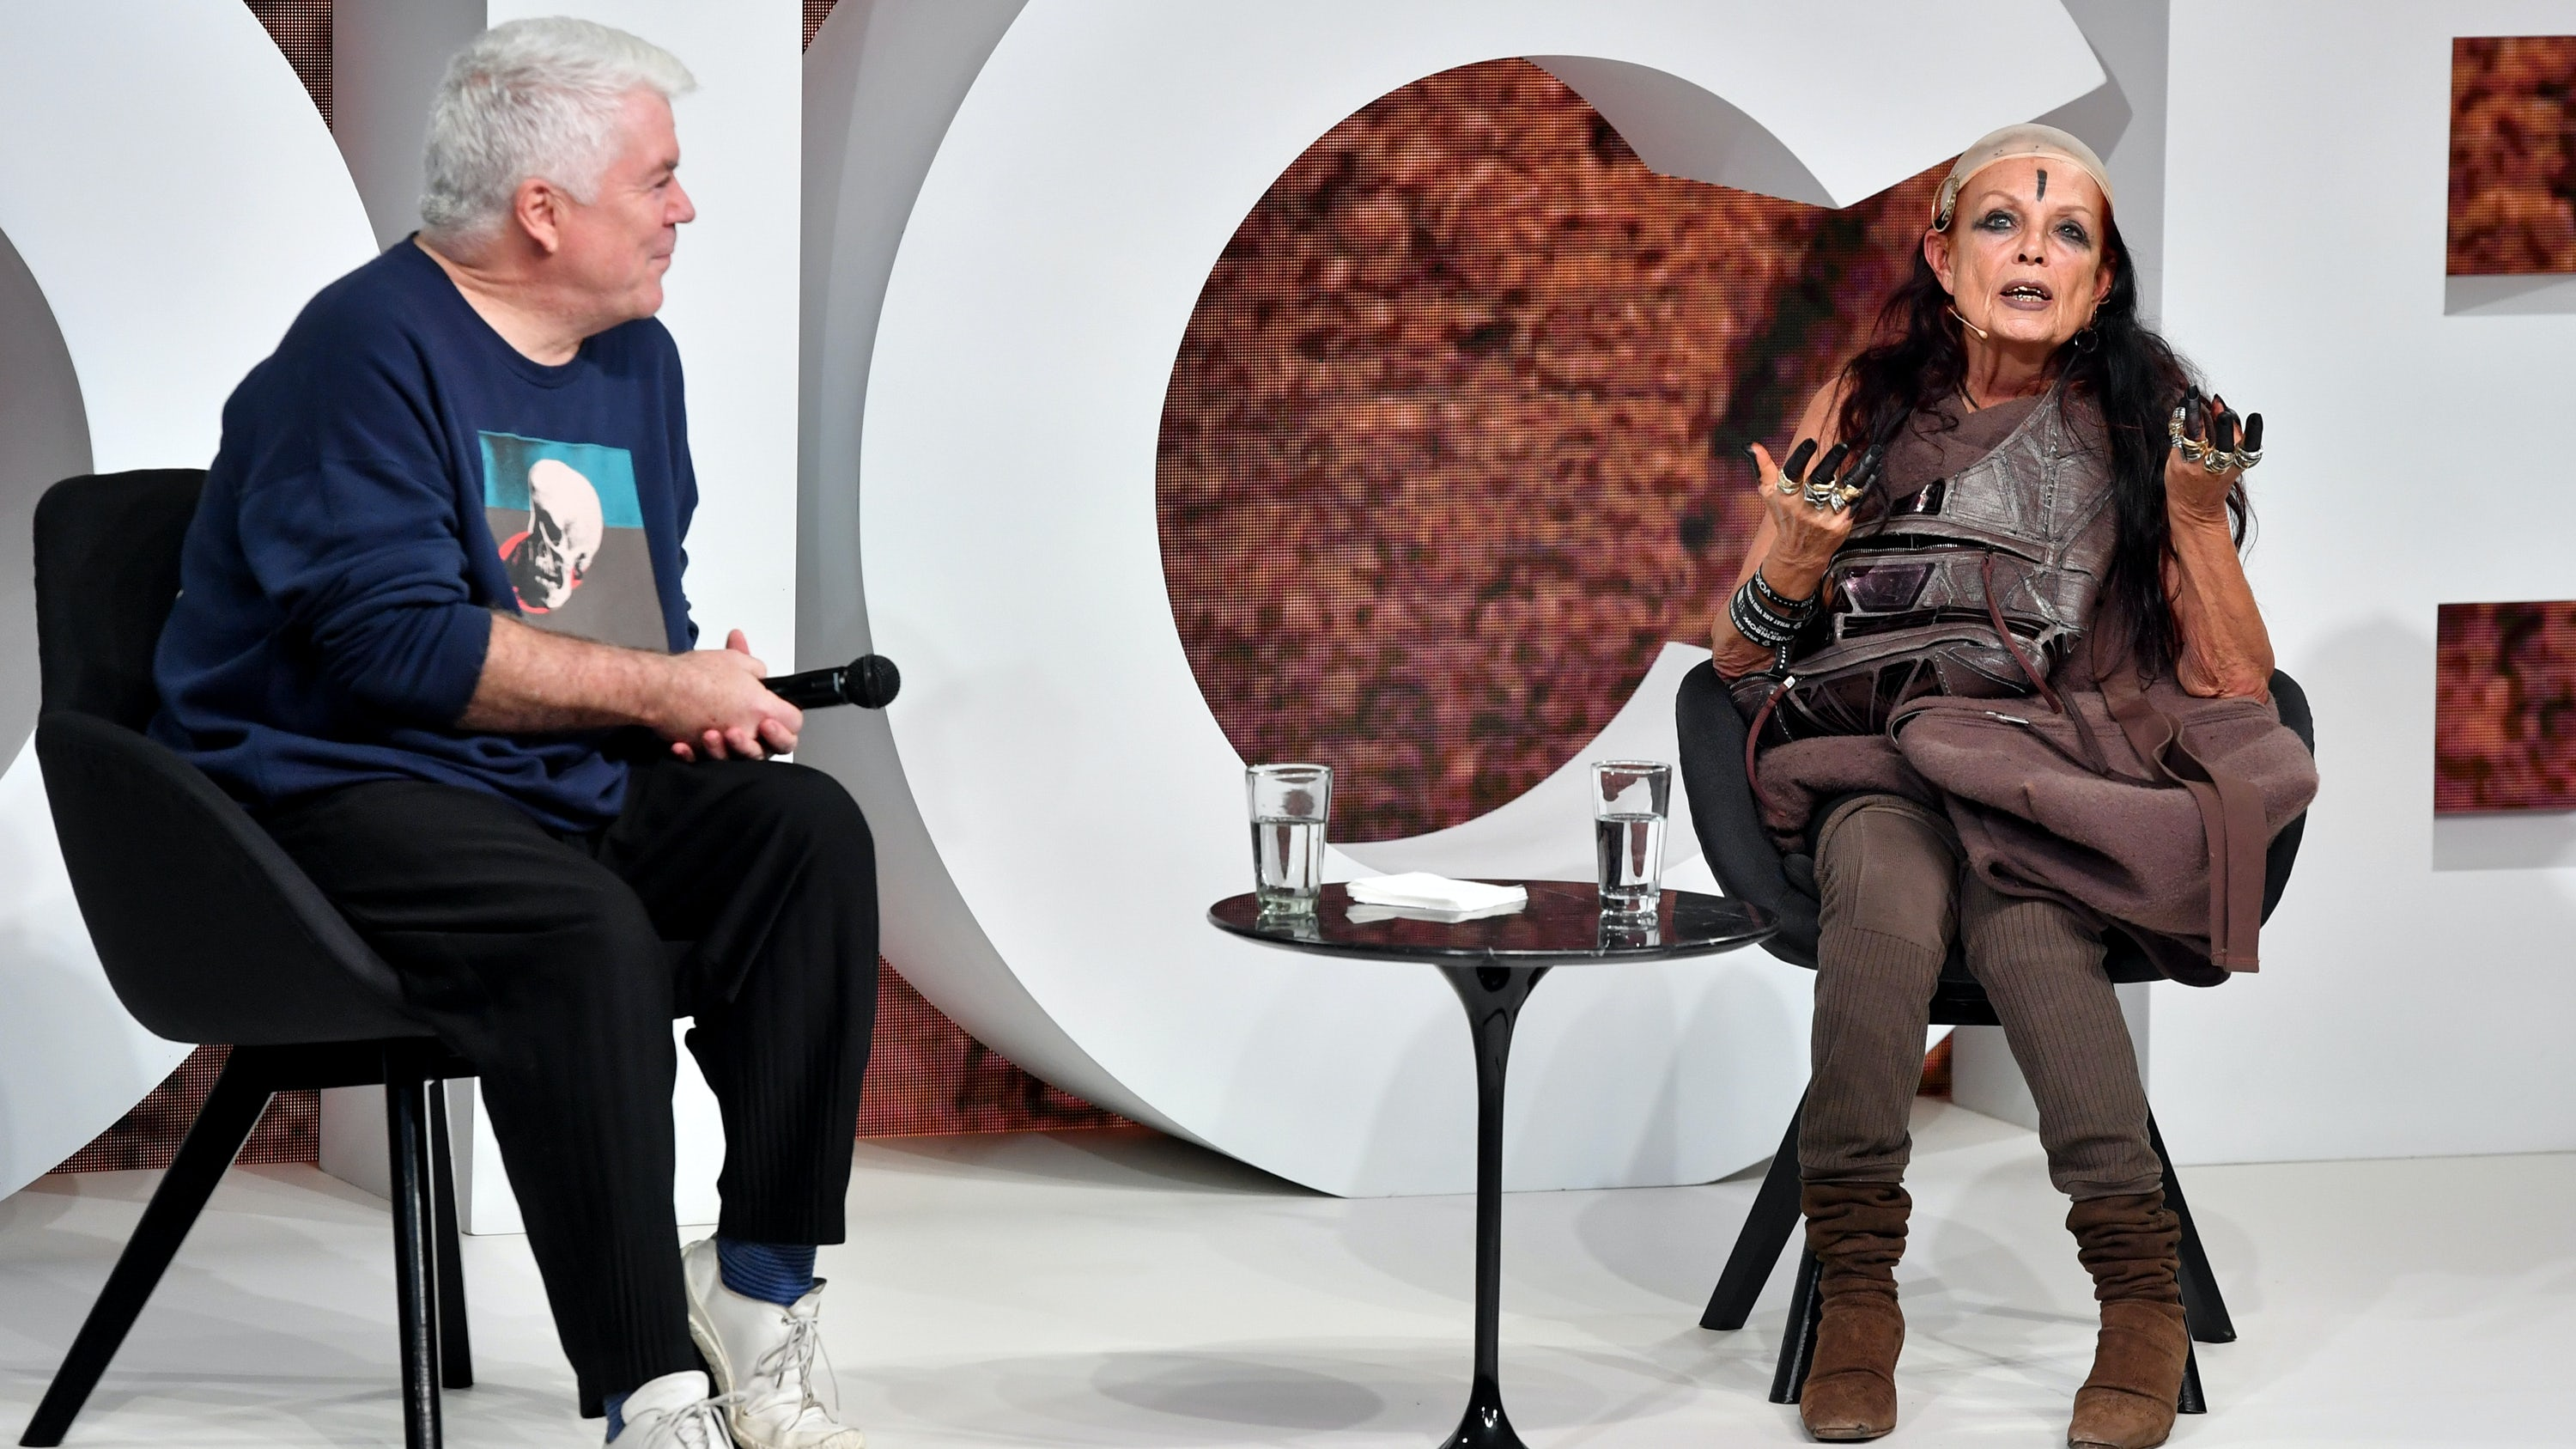 Tim Blanks and Michèle Lamy on stage at BoF's VOICES | Source: Getty Images for The Business of Fashion